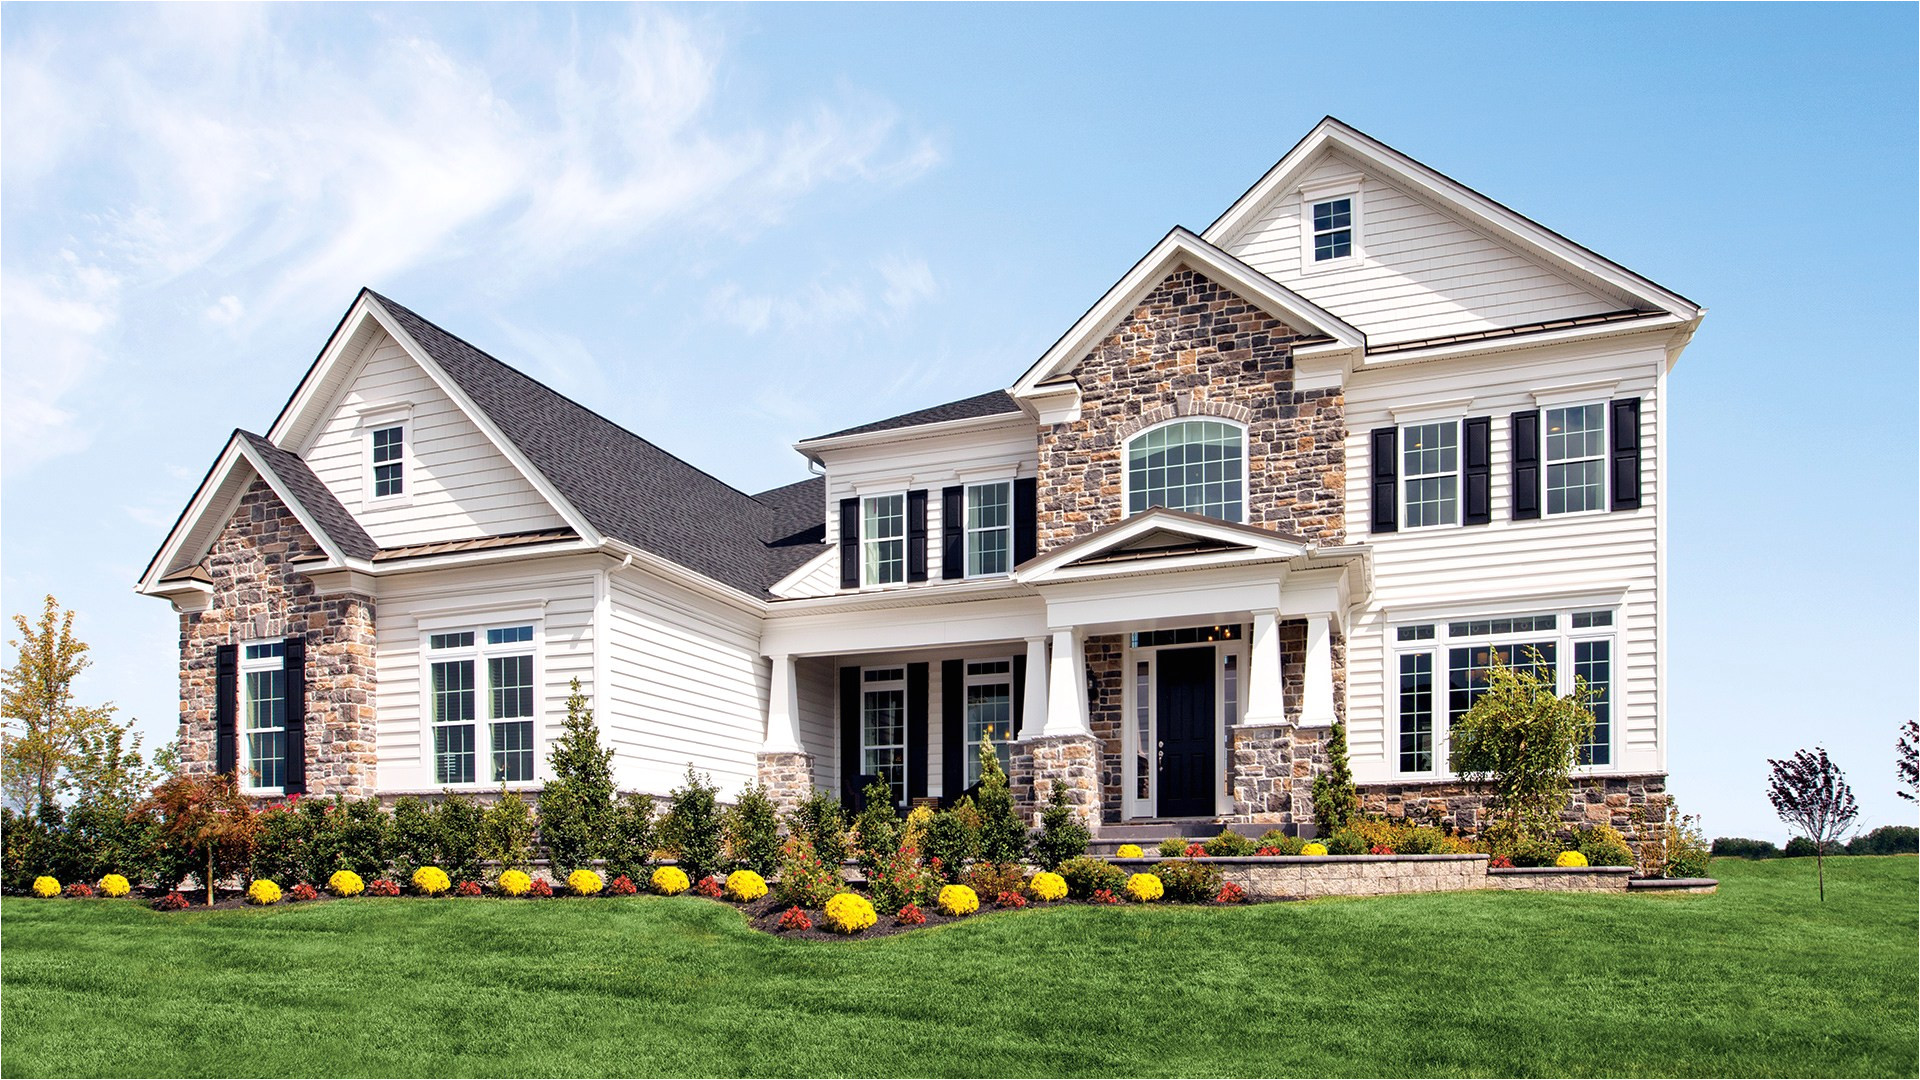 Award Winning Drive Under House Plans One Story House Plans with Walkout Basements and How to